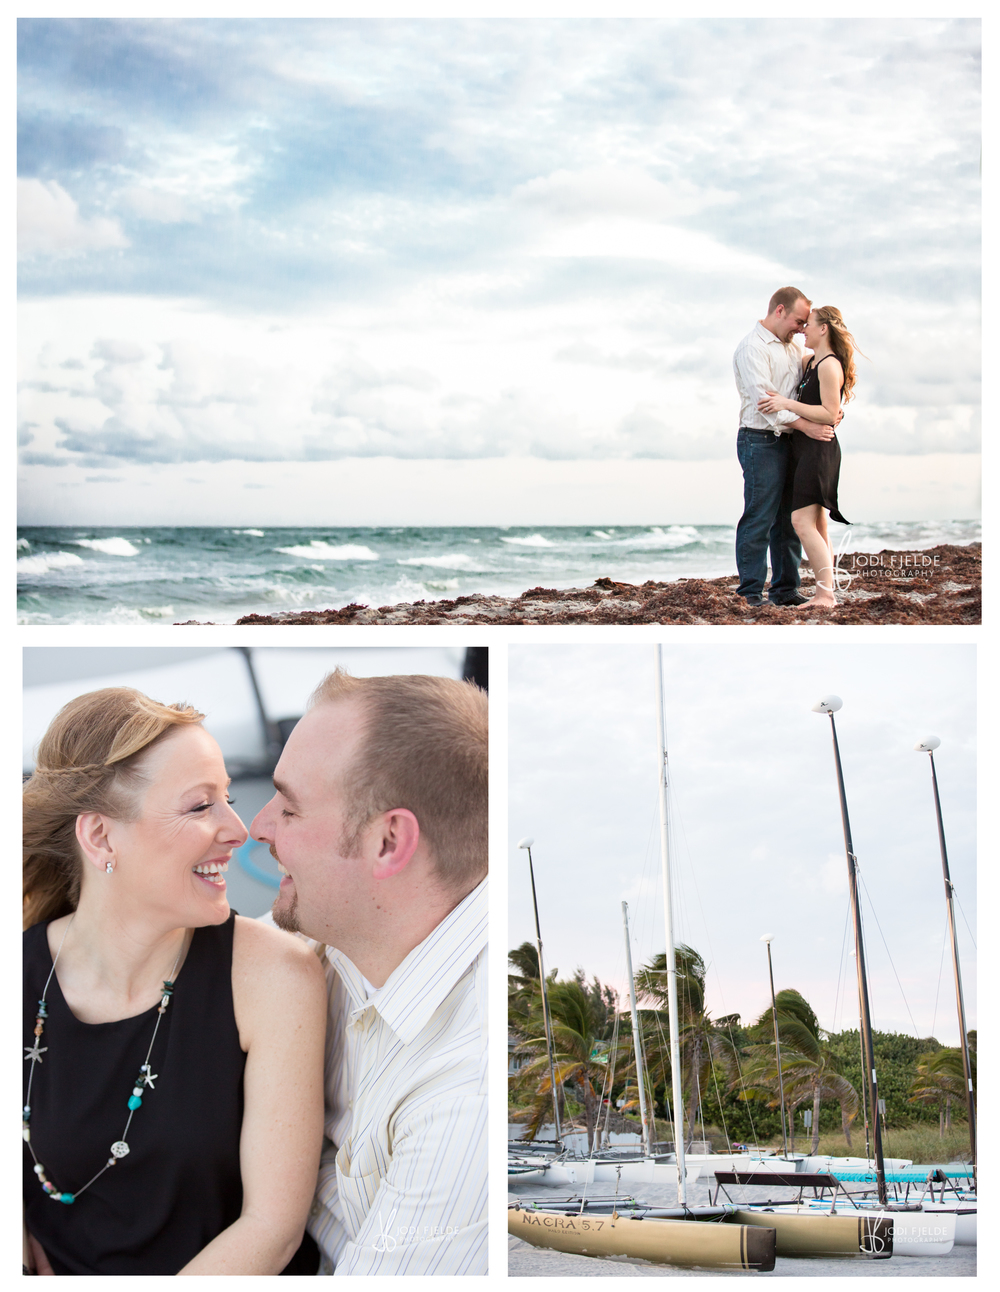 Delray Beach Engagement Photography Jenna & Bryan 8.jpg